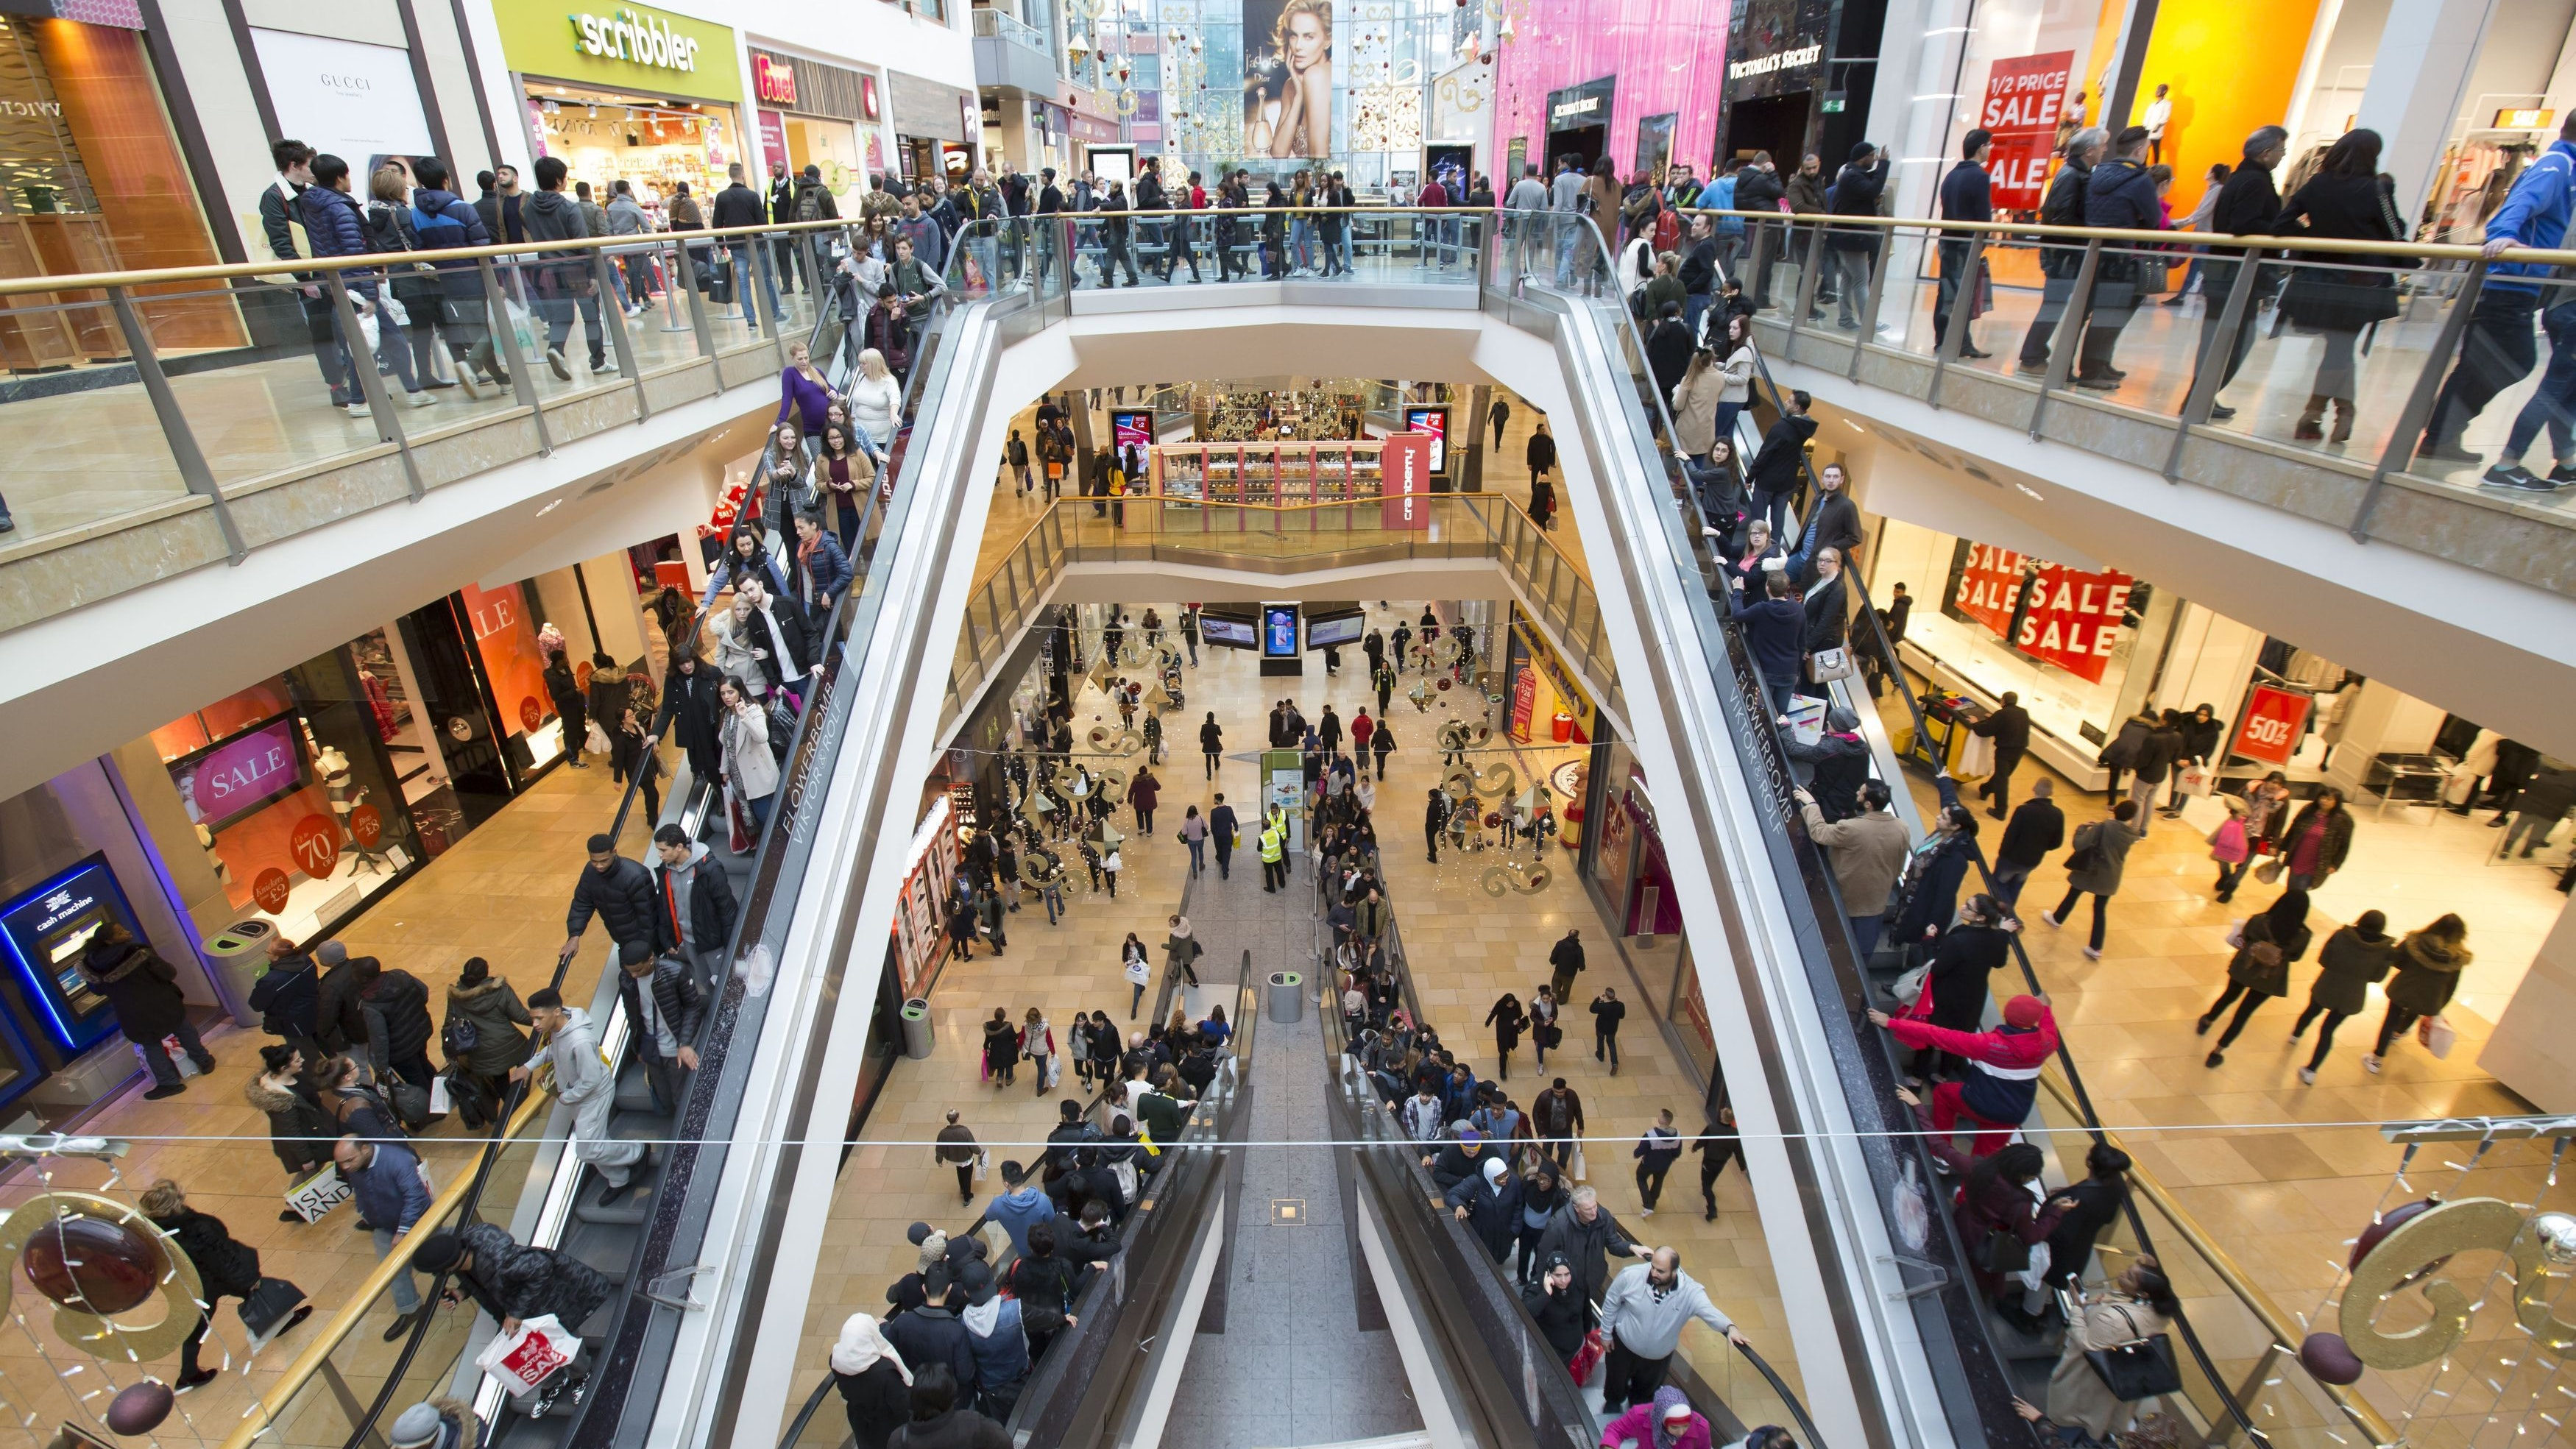 French confirm approach for Hammerson